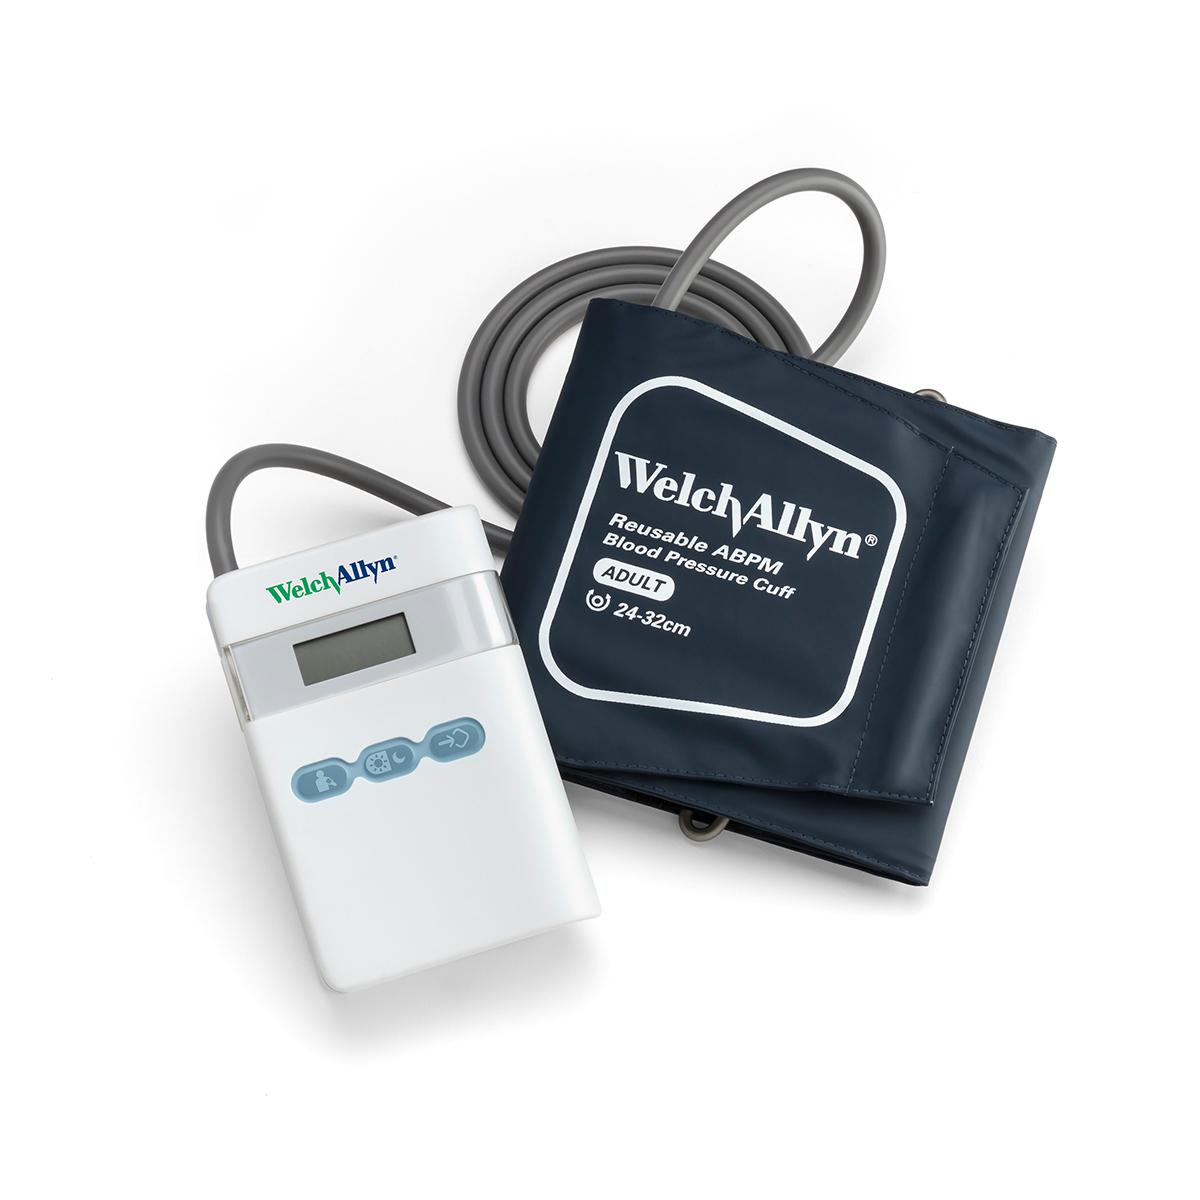 ABPM 7100 Ambulatory Blood Pressure Monitor and cuff on white background, overhead shot